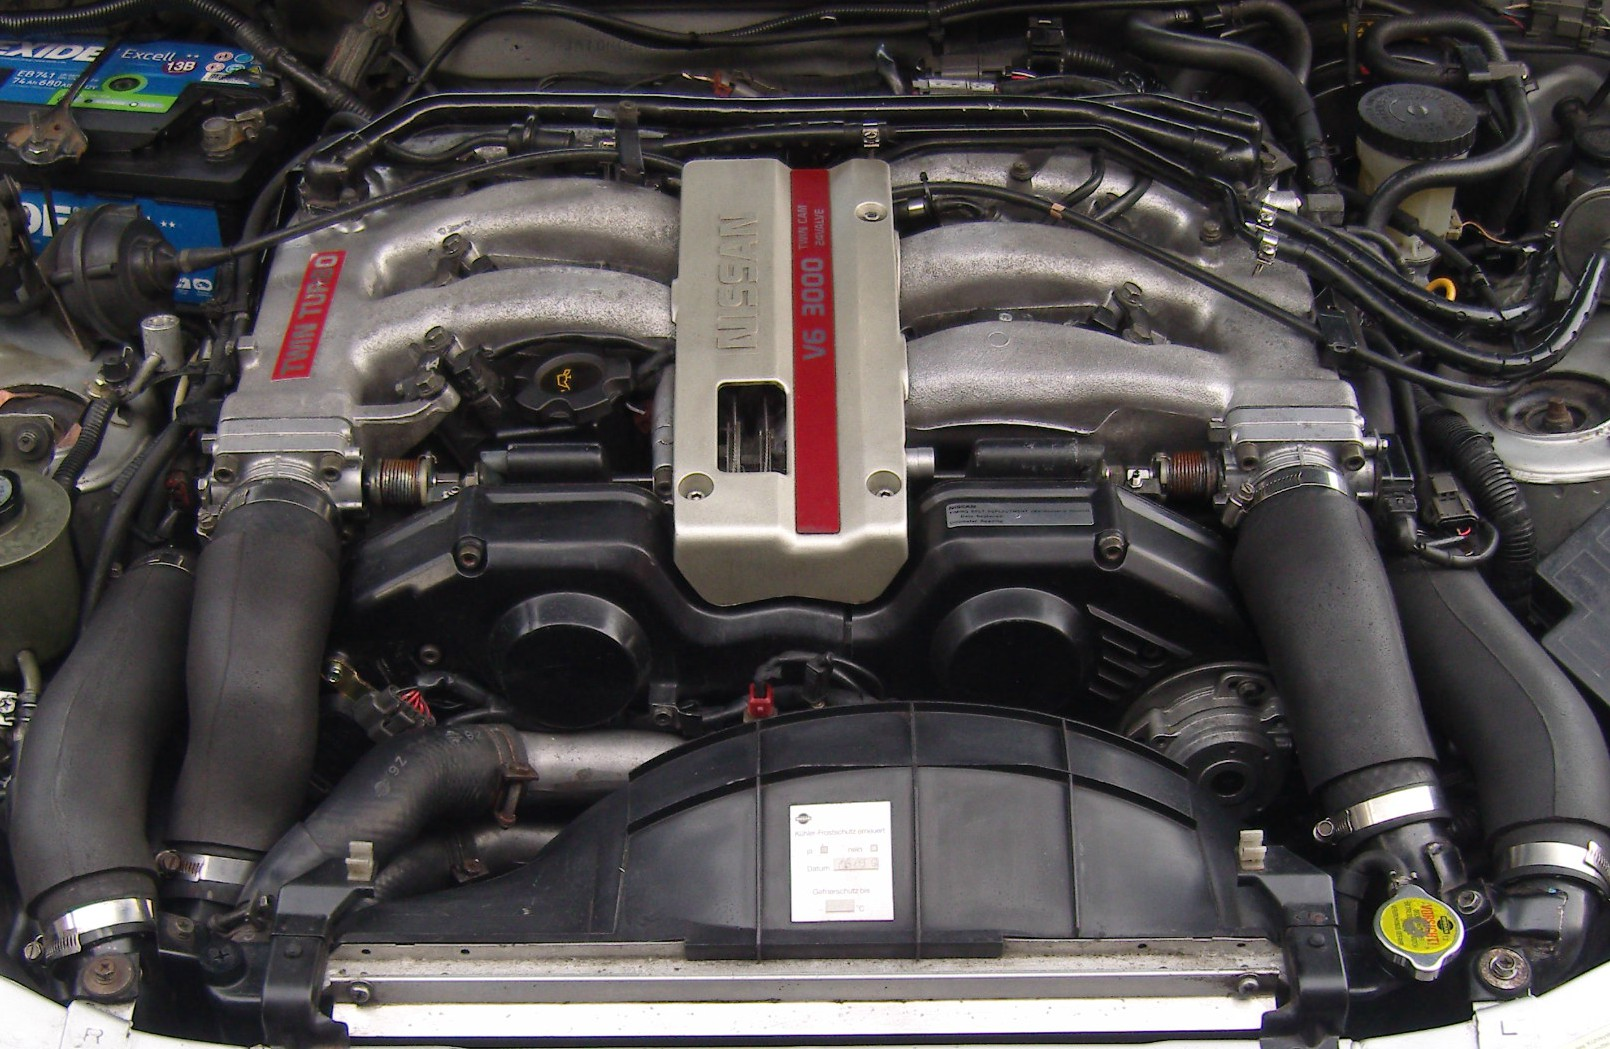 Vg30dett Custom Intake Manifold Nissan Z32 Wiring Factory Note Throttle Bodies And Linkages Pushed Back From Timing Belt Covers